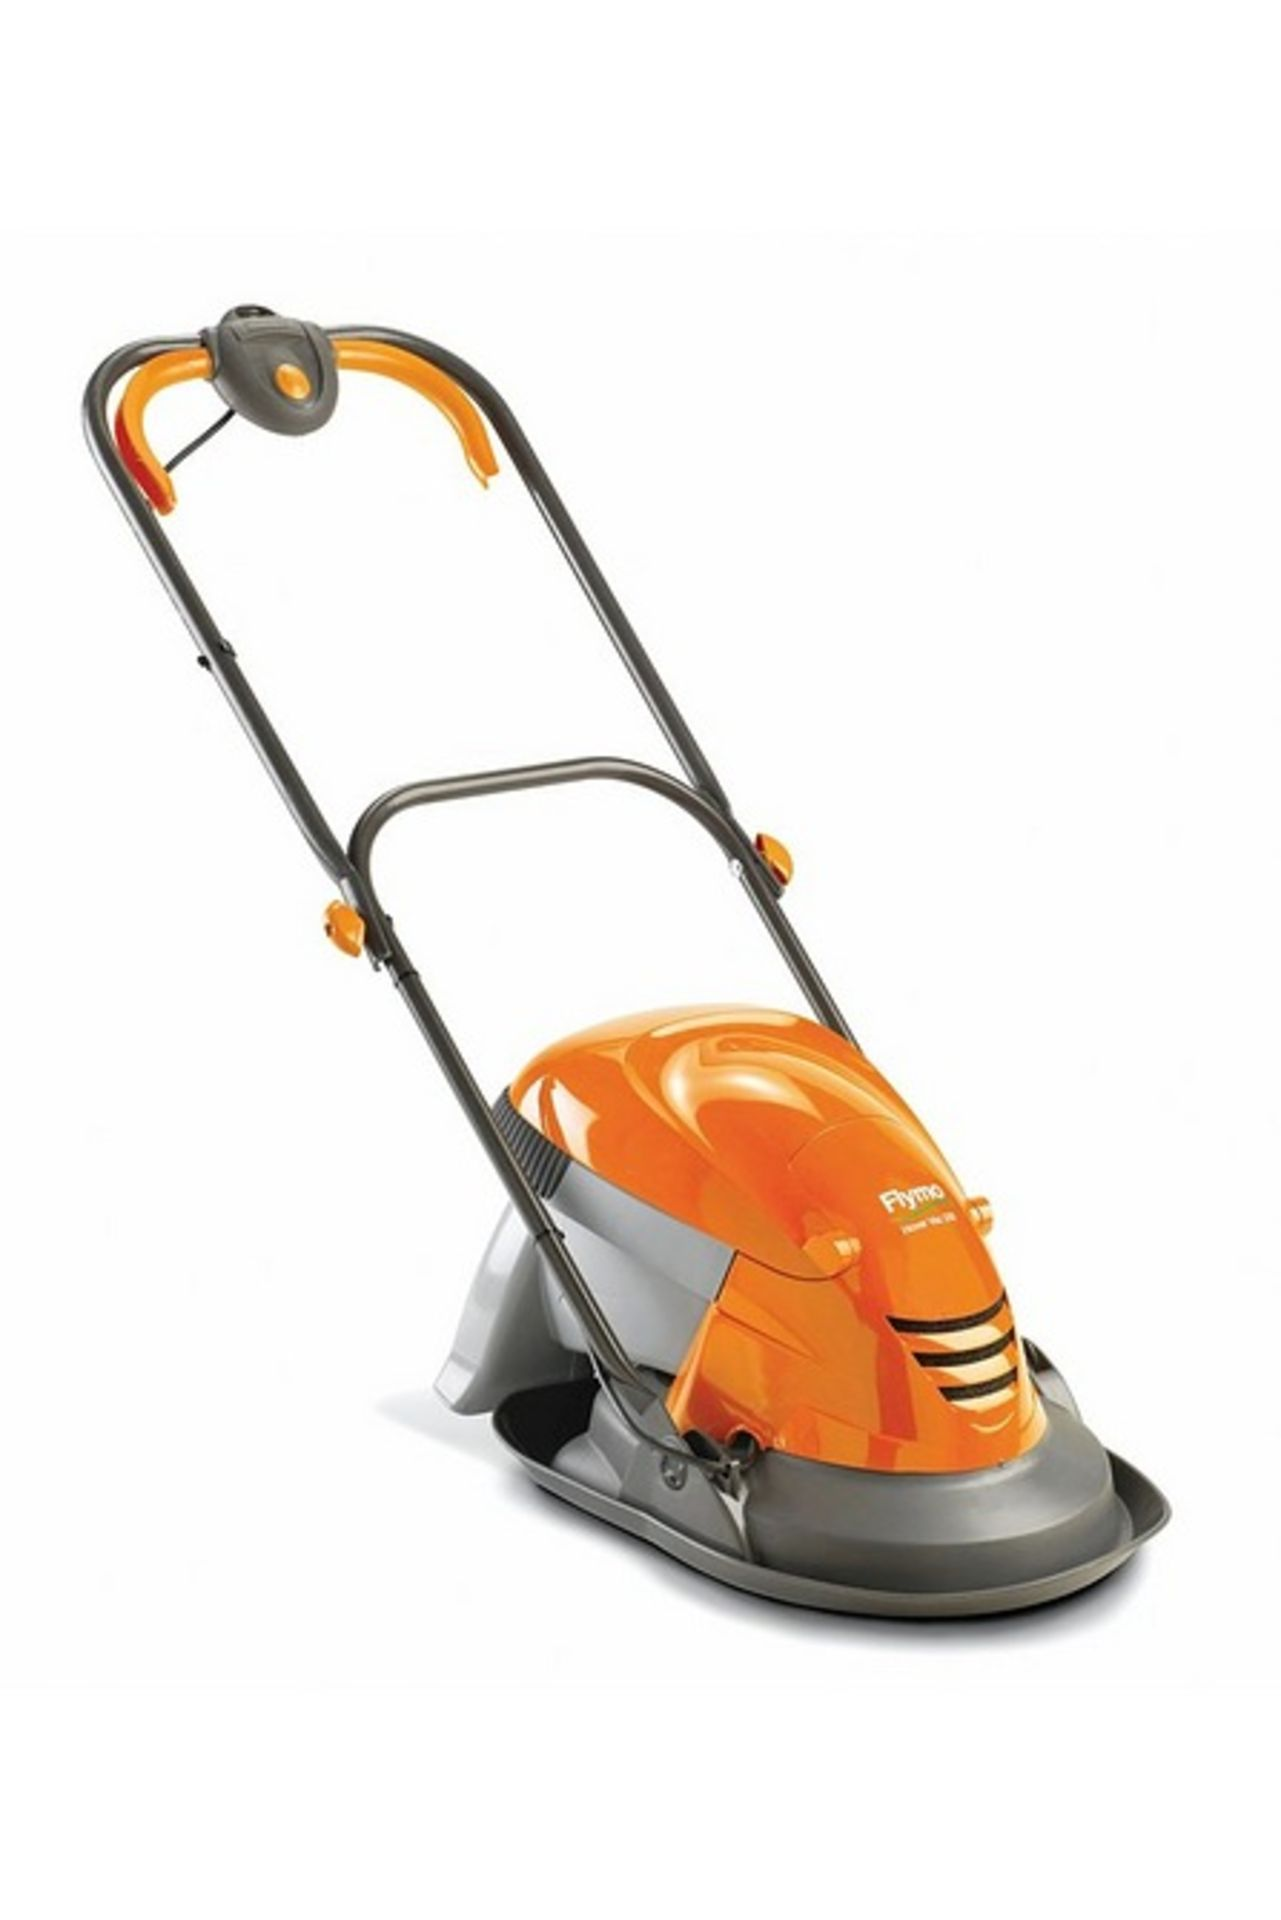 (P10) 1x Flymo Hover Vac 250 RRP £80. New, Sealed Item With Some Box Damage. - Image 2 of 4